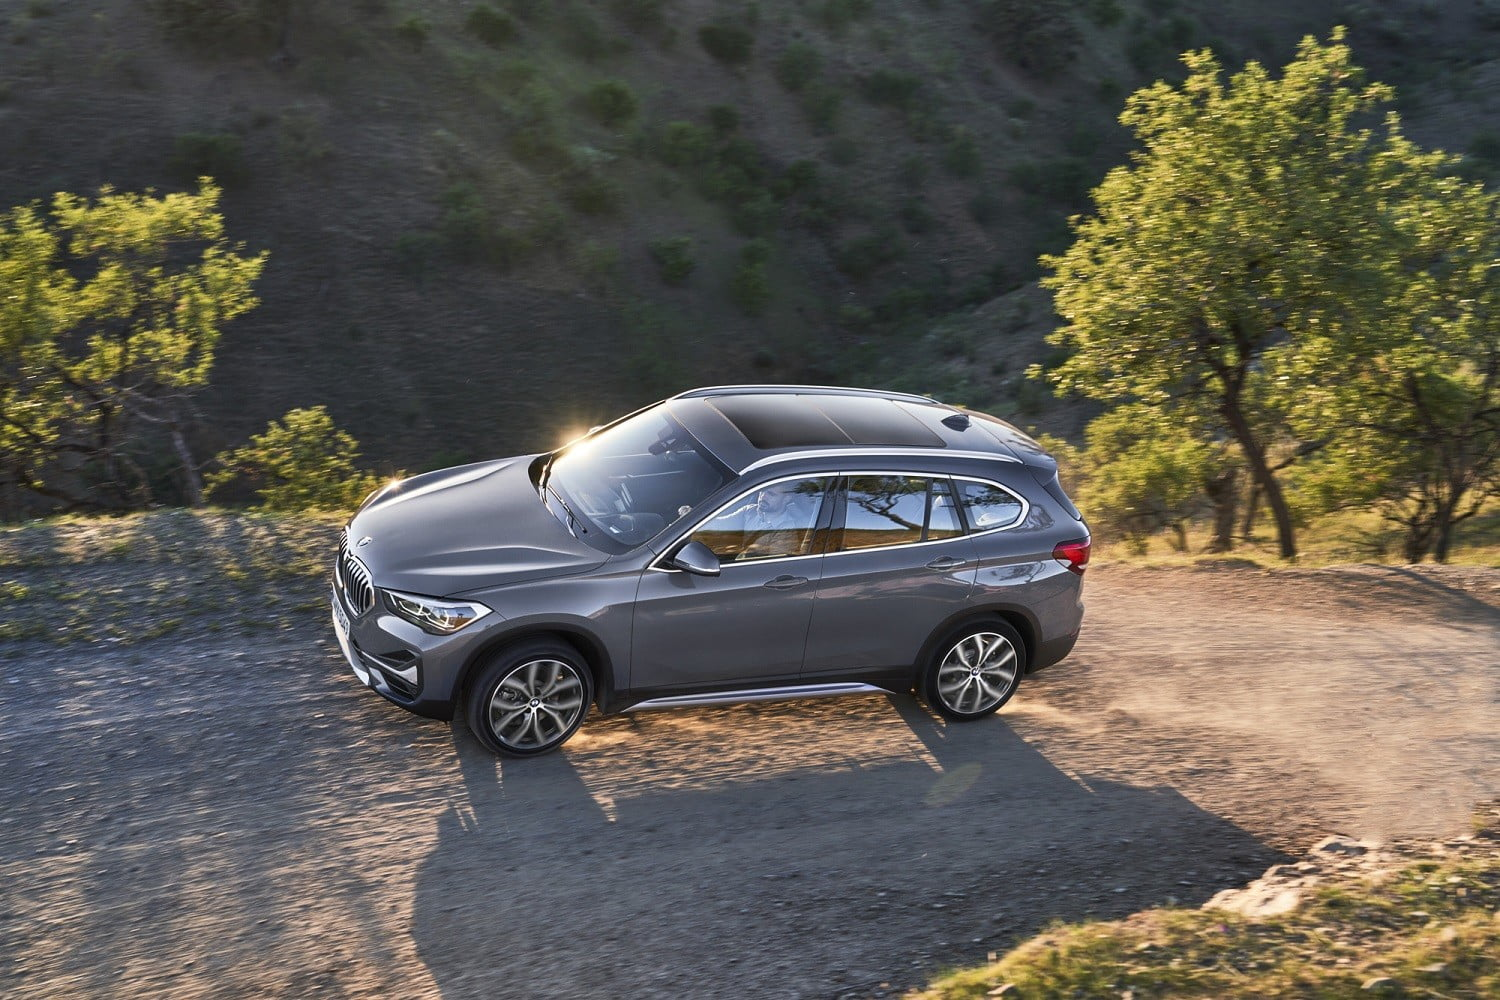 2020 bmw x1 gets new look front end interior upgrades official 3